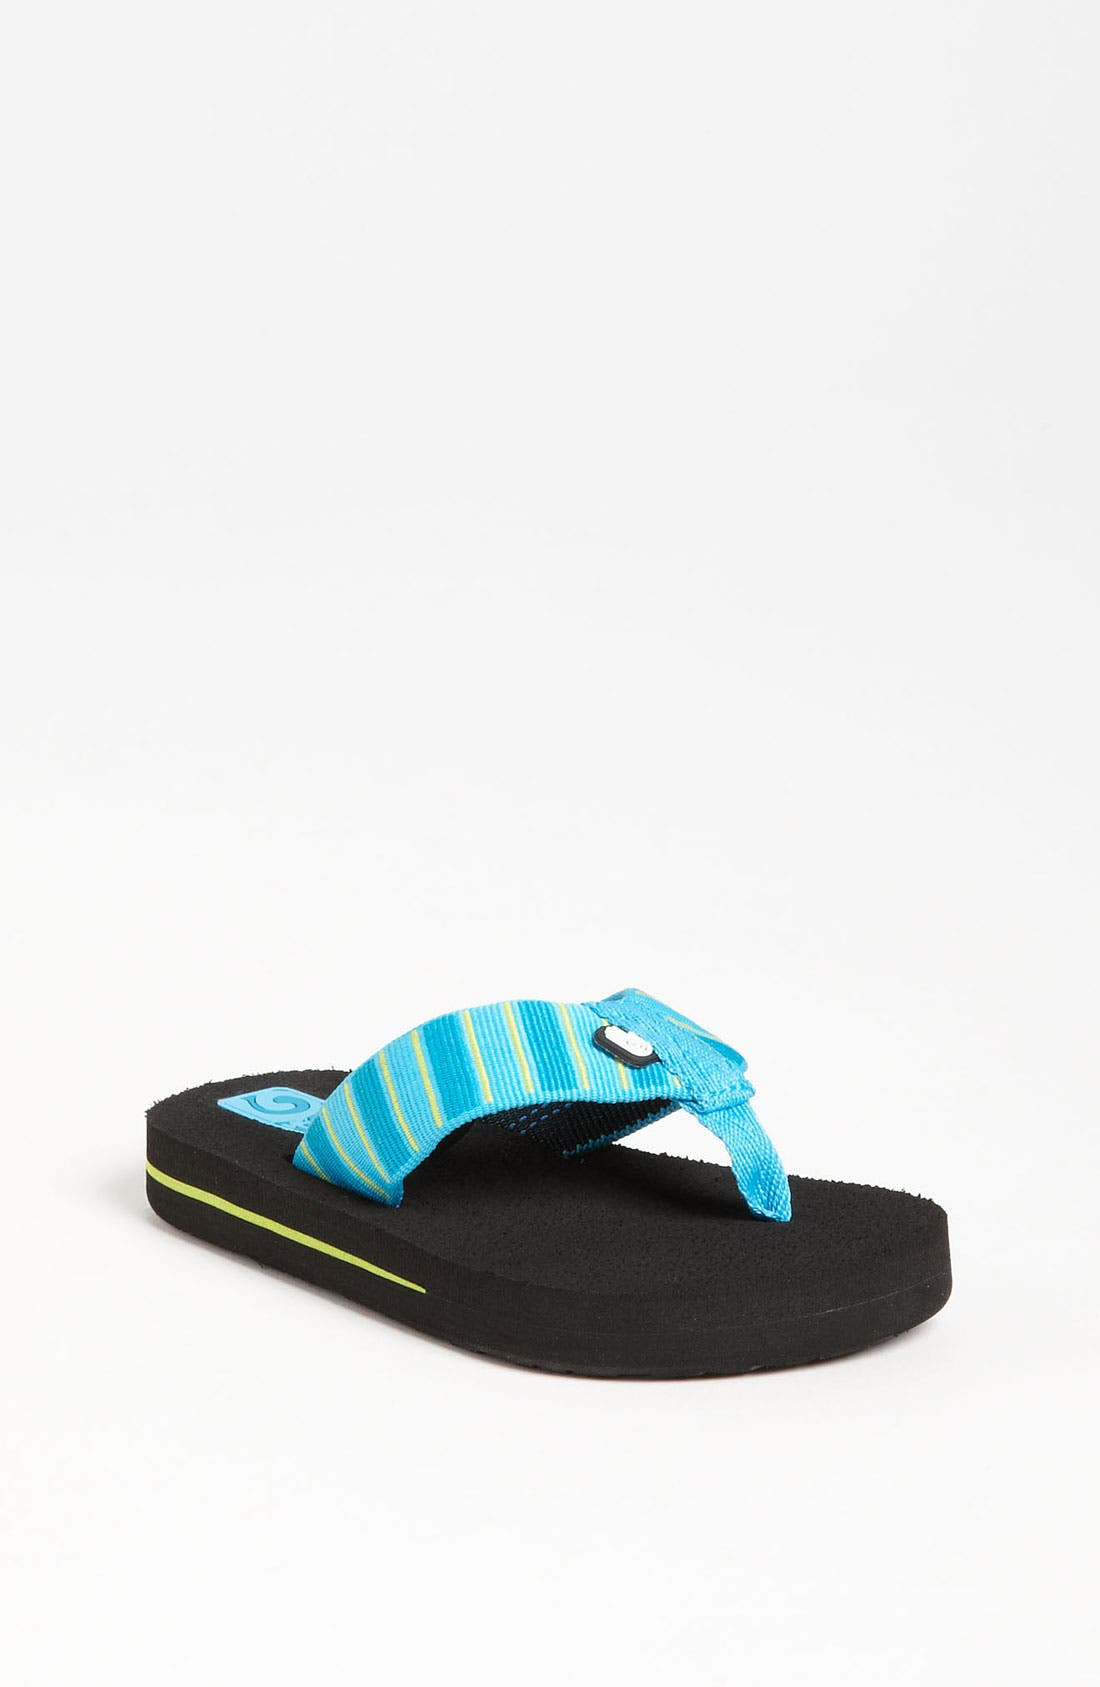 Main Image - Teva 'Mush' Sandal (Toddler, Little Kid & Big Kid)